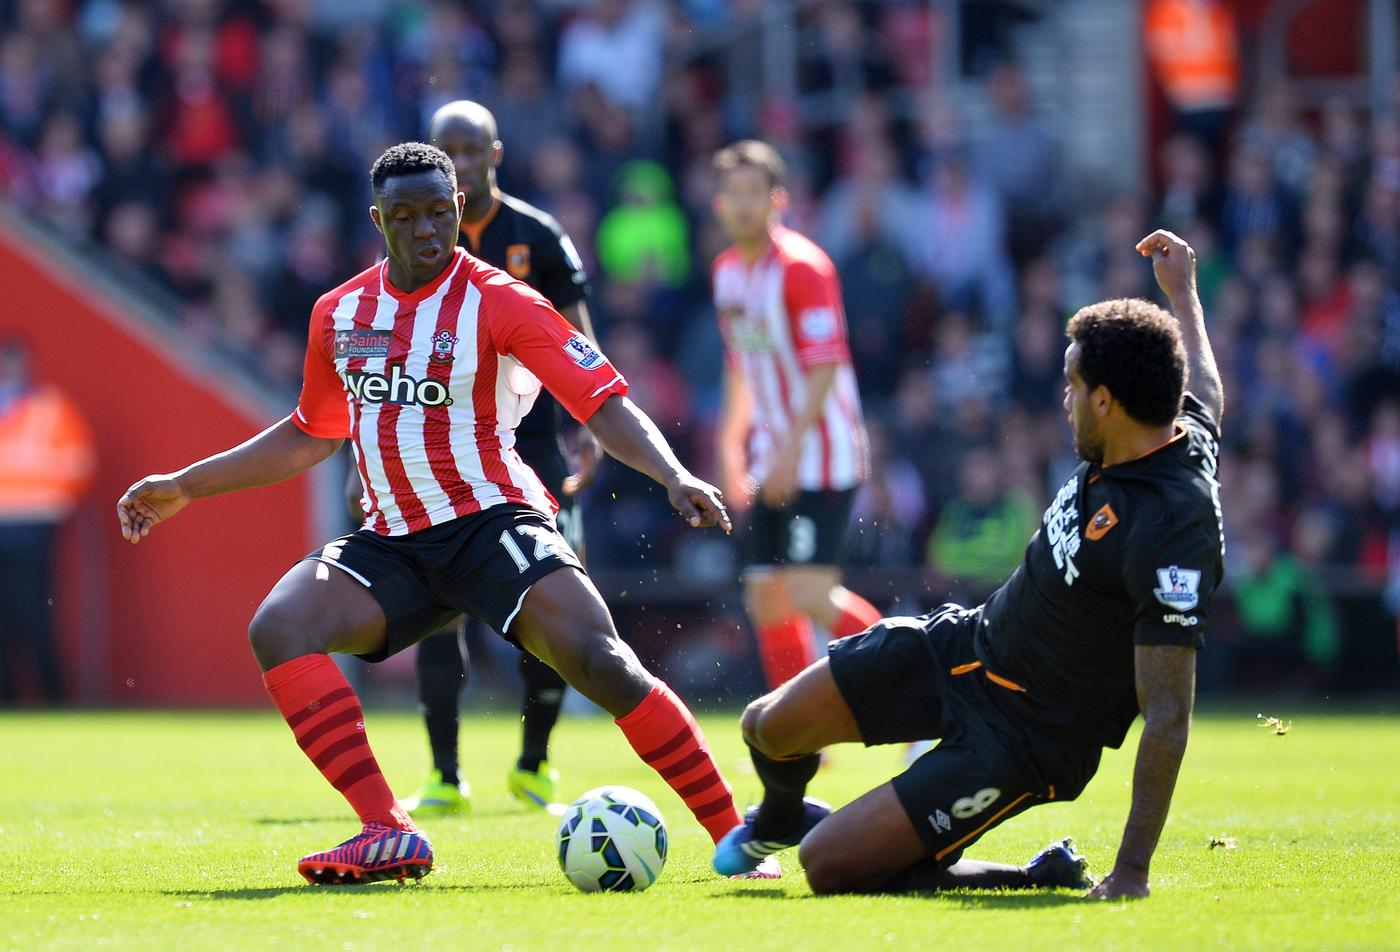 Southampton's Victor Wanyama denies suggesting Arsenal want to sign him in summer transfer window